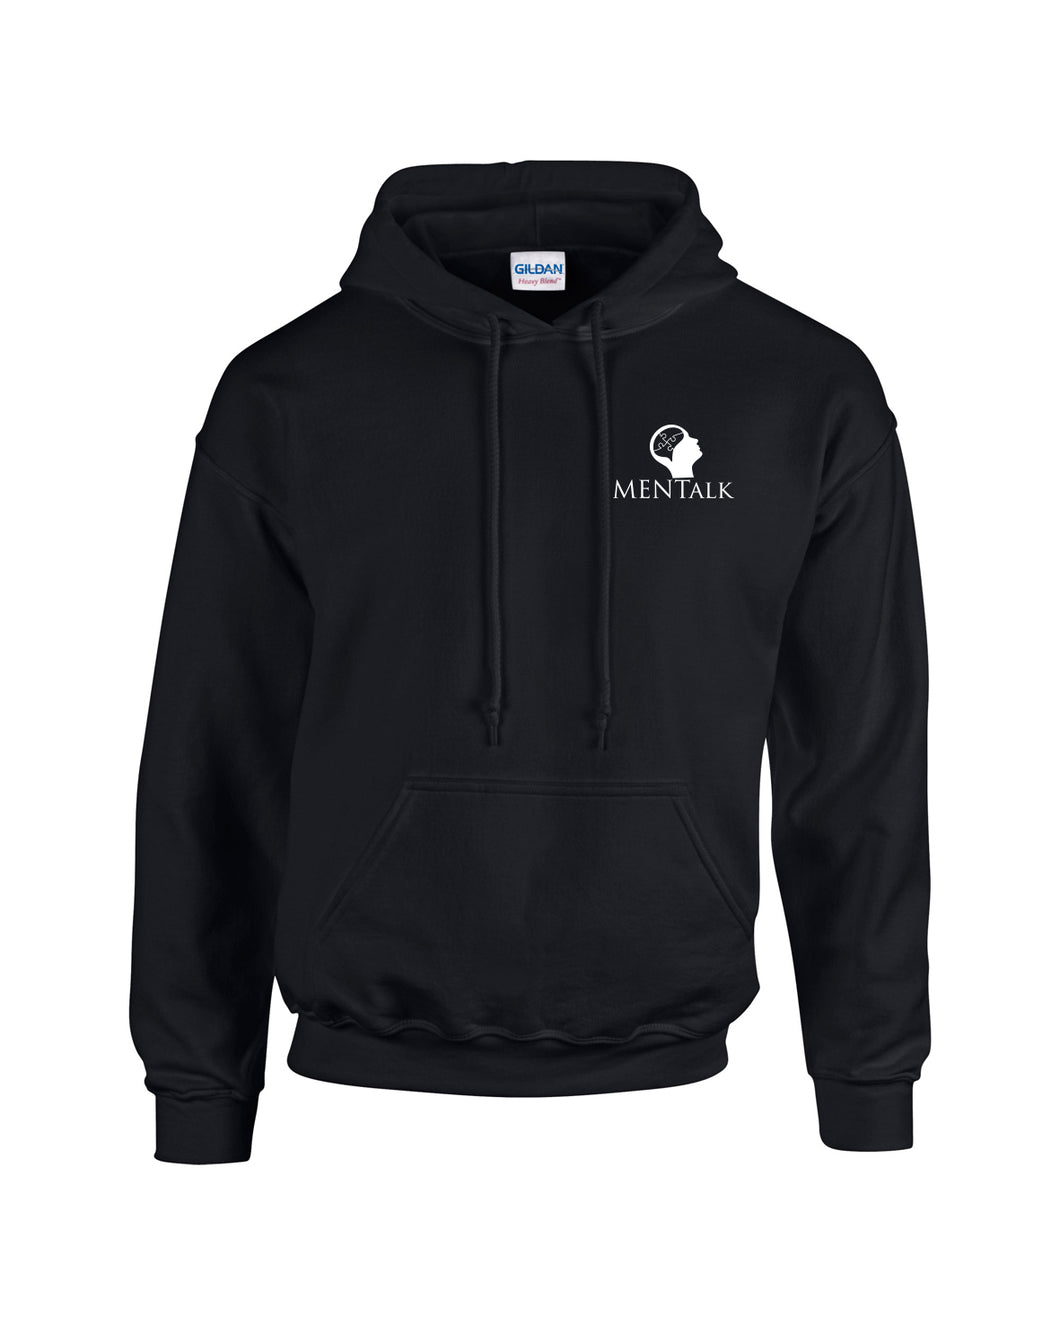 MENTalk Classic Hooded Sweatshirt